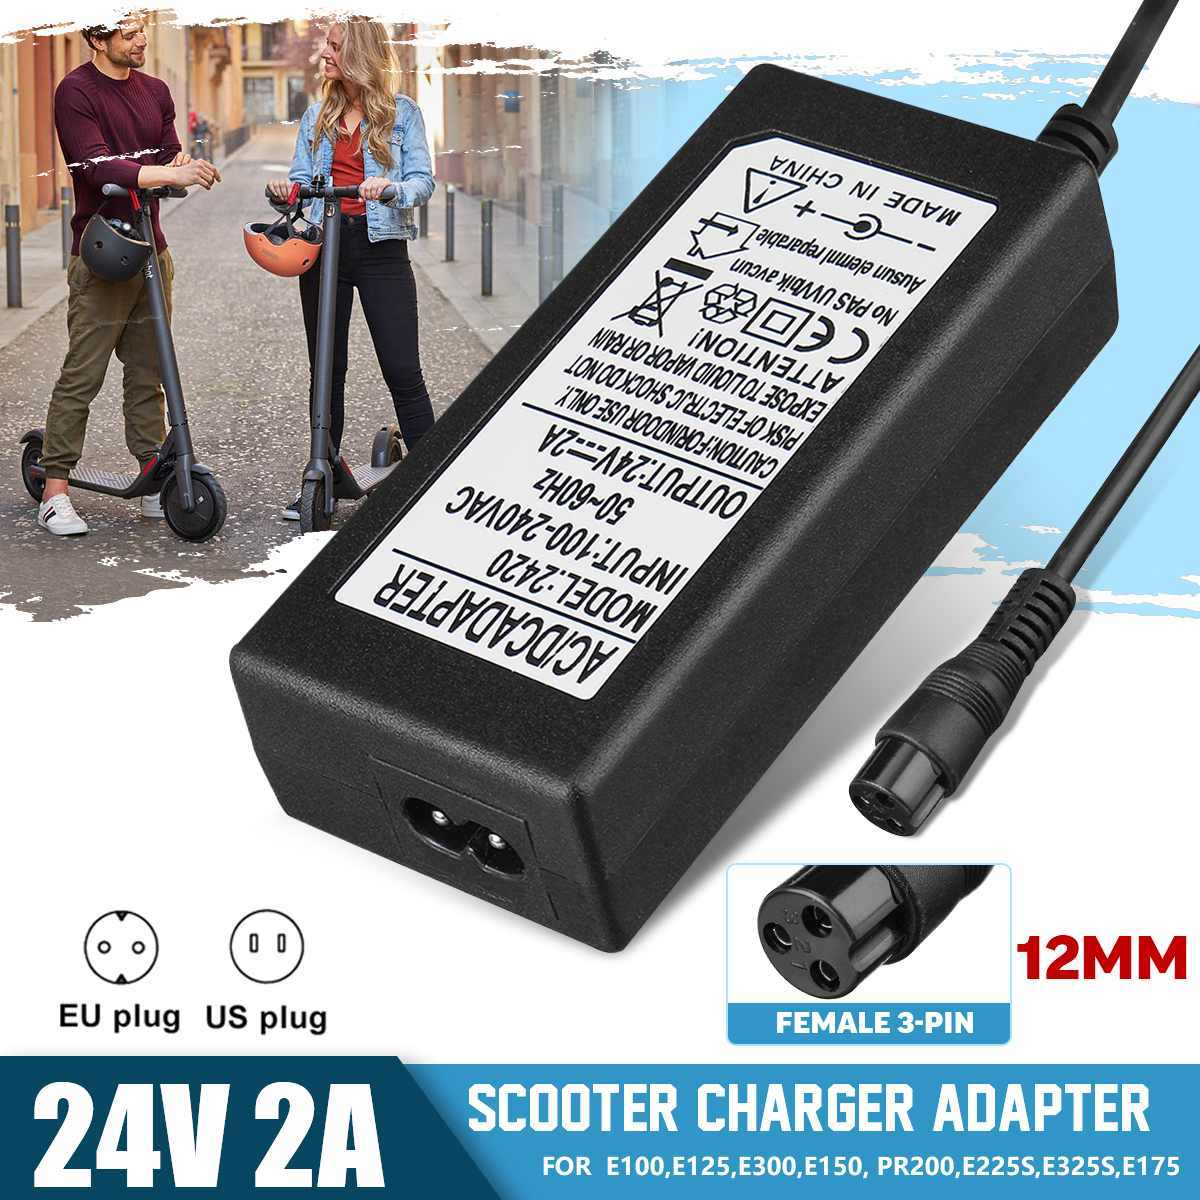 Fast Battery Charger for Razor E Series Elektrisch Scooters 24V 3-Prong AC